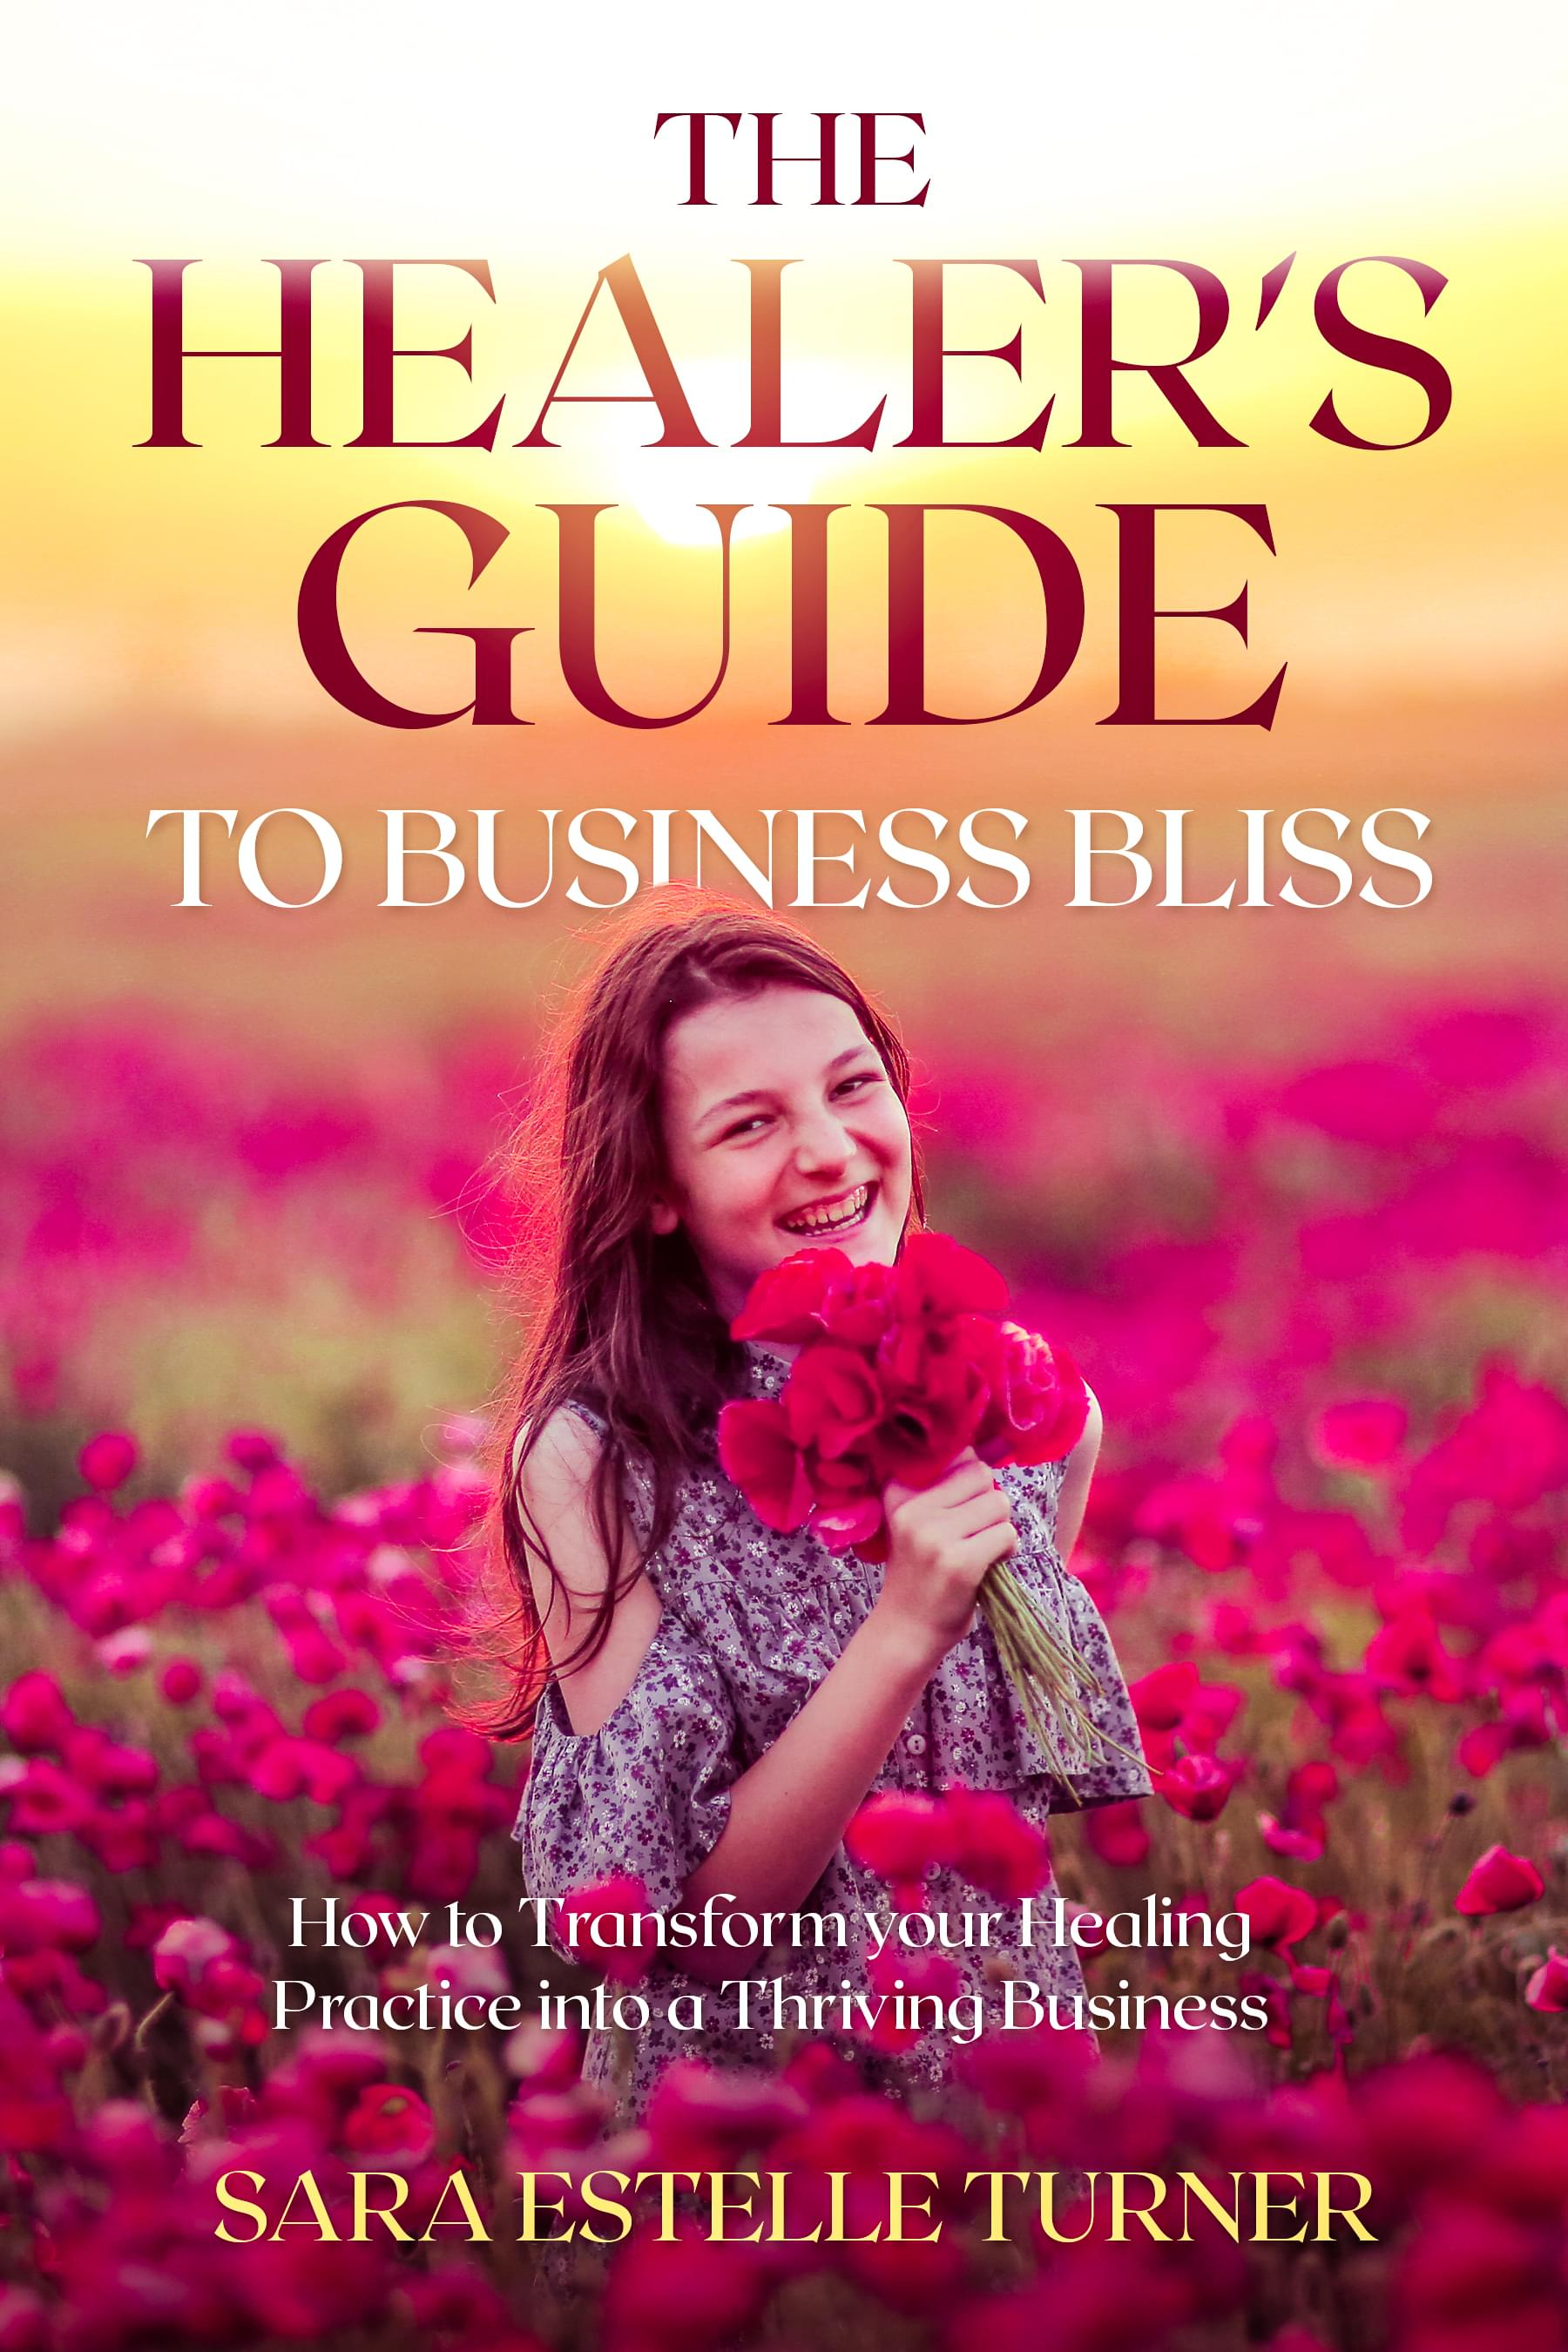 Healer's Guide to Business Bliss